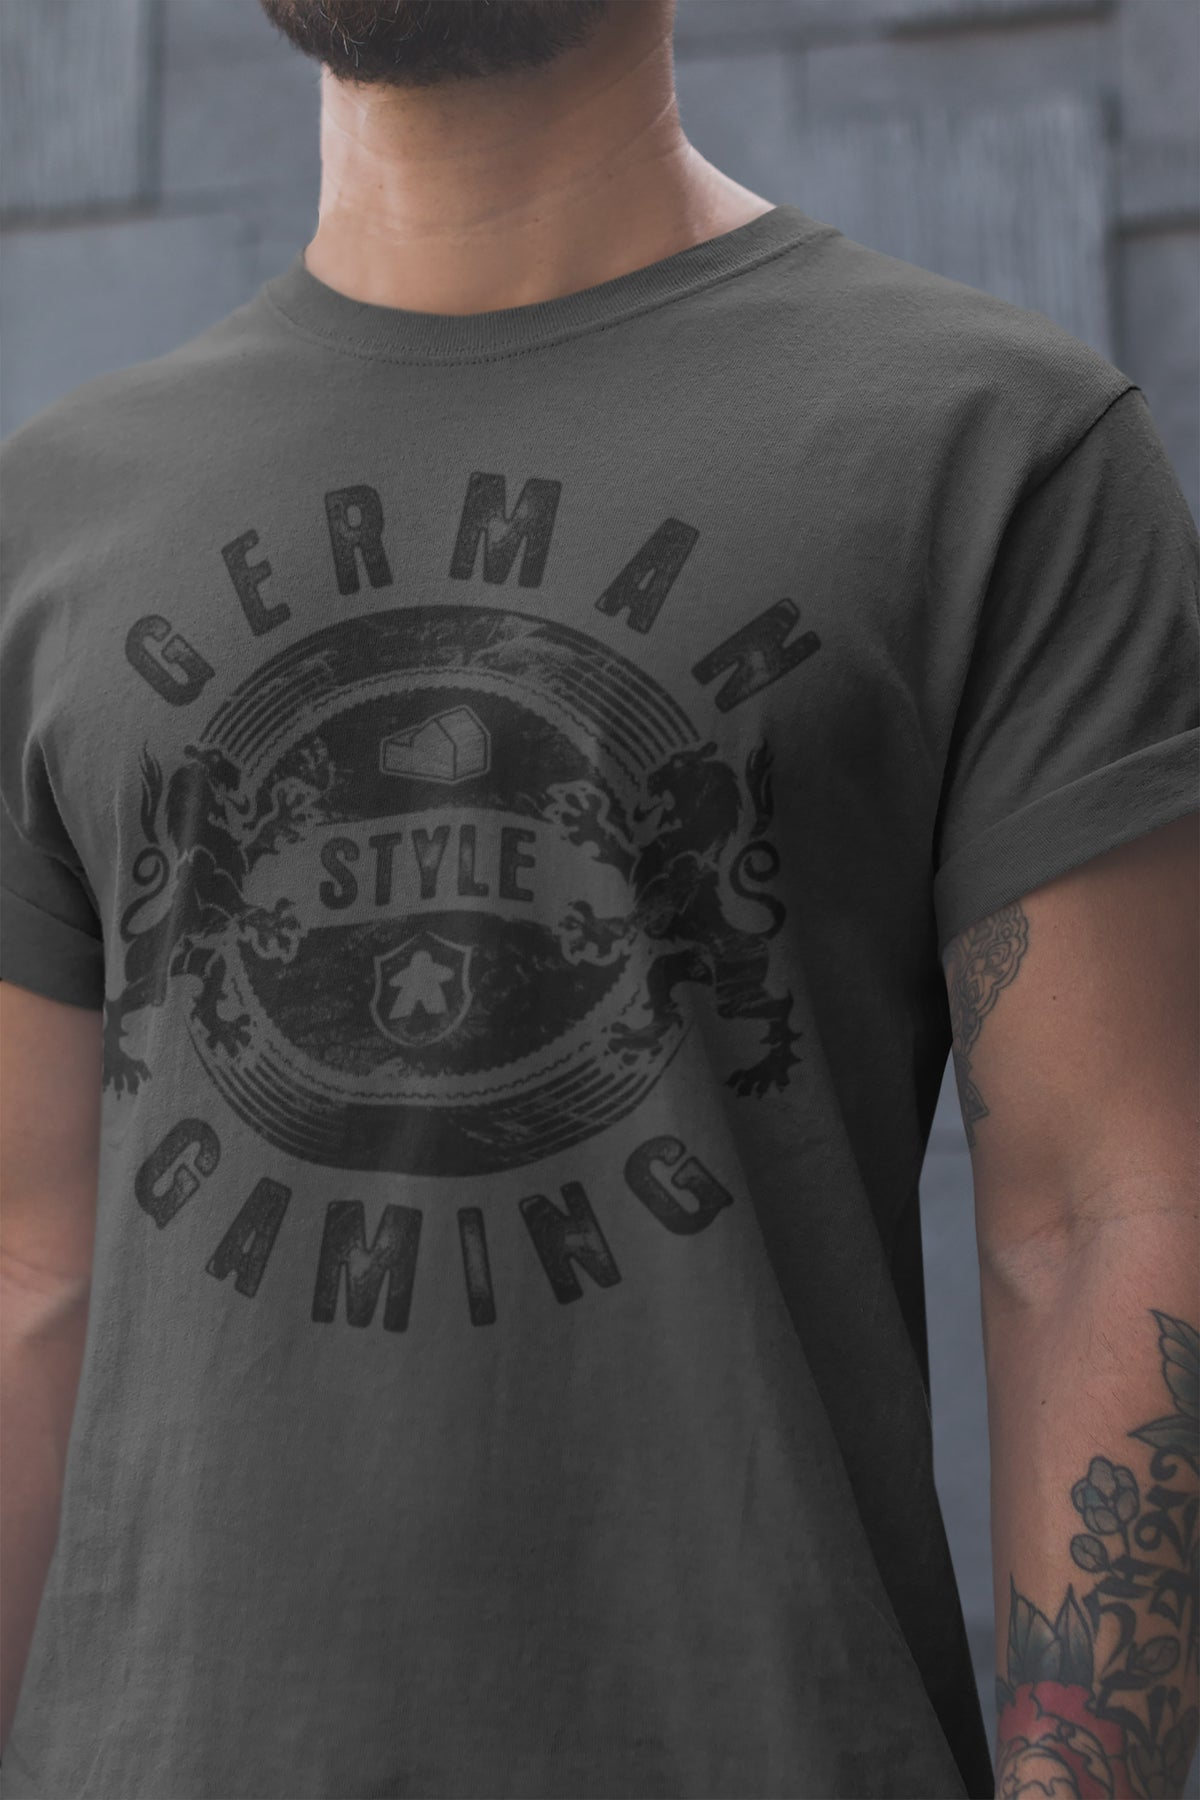 German Style Board Gaming T-Shirt Action Shot Men's